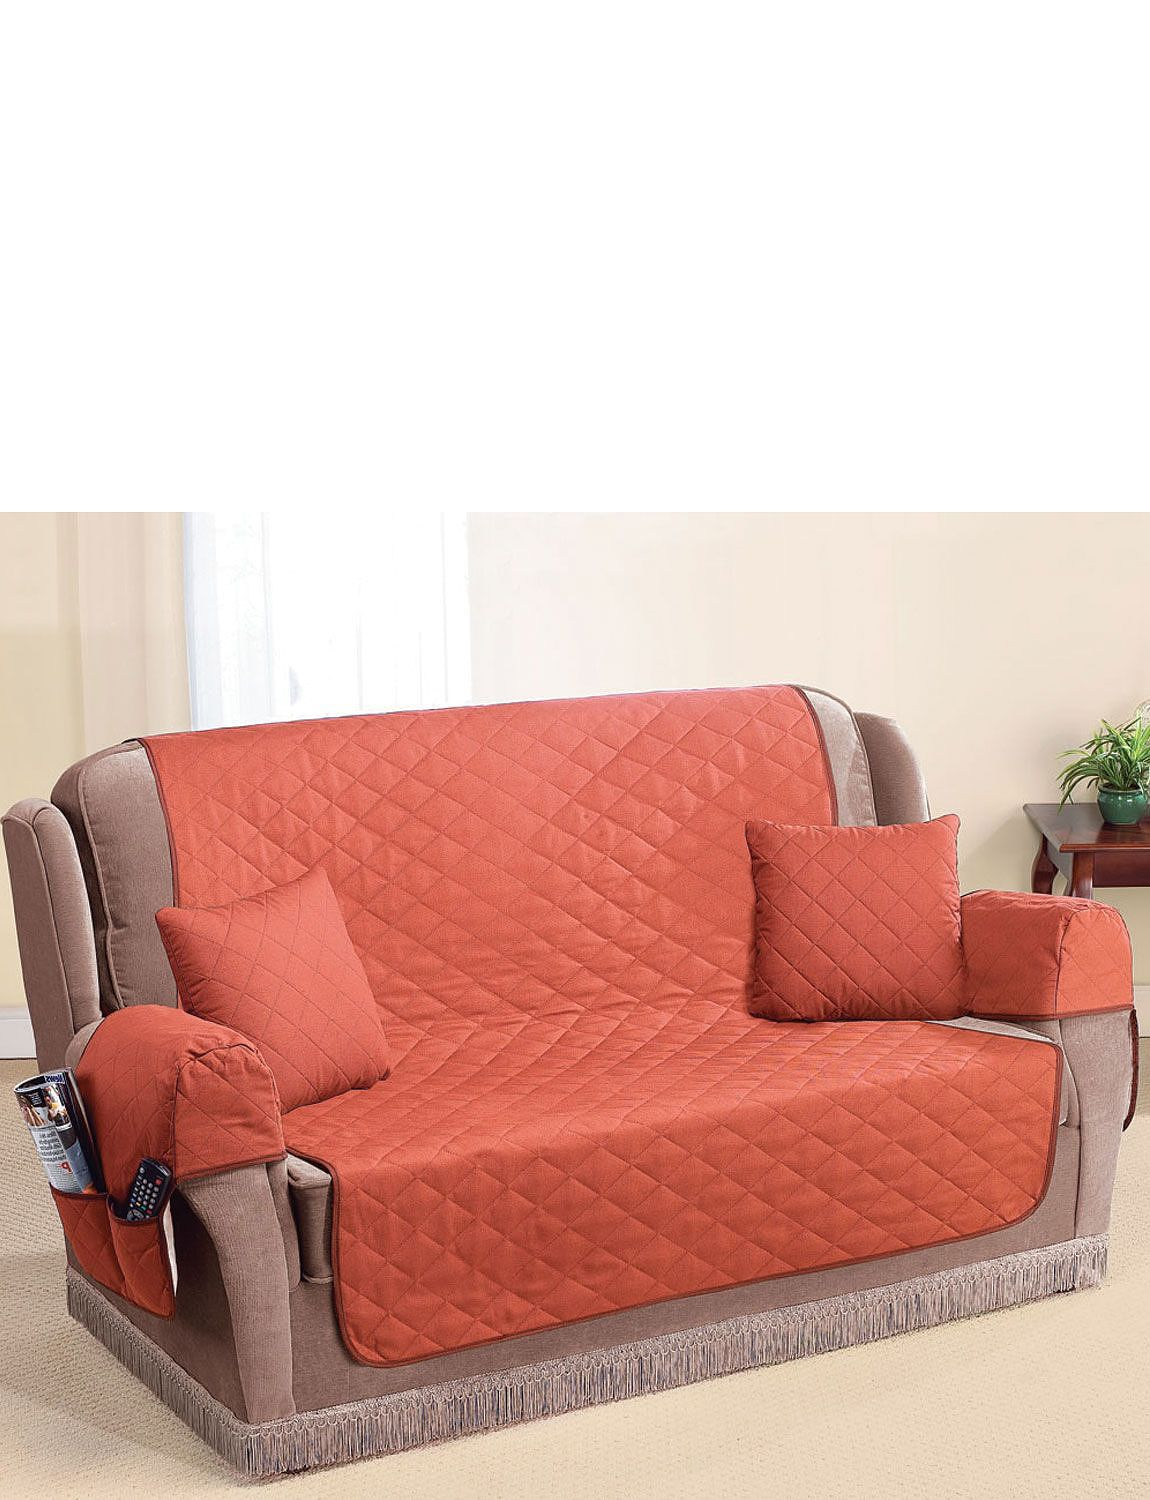 QUILTED WASHABLE ARM CAP FURNITURE PROTECTOR SET Home